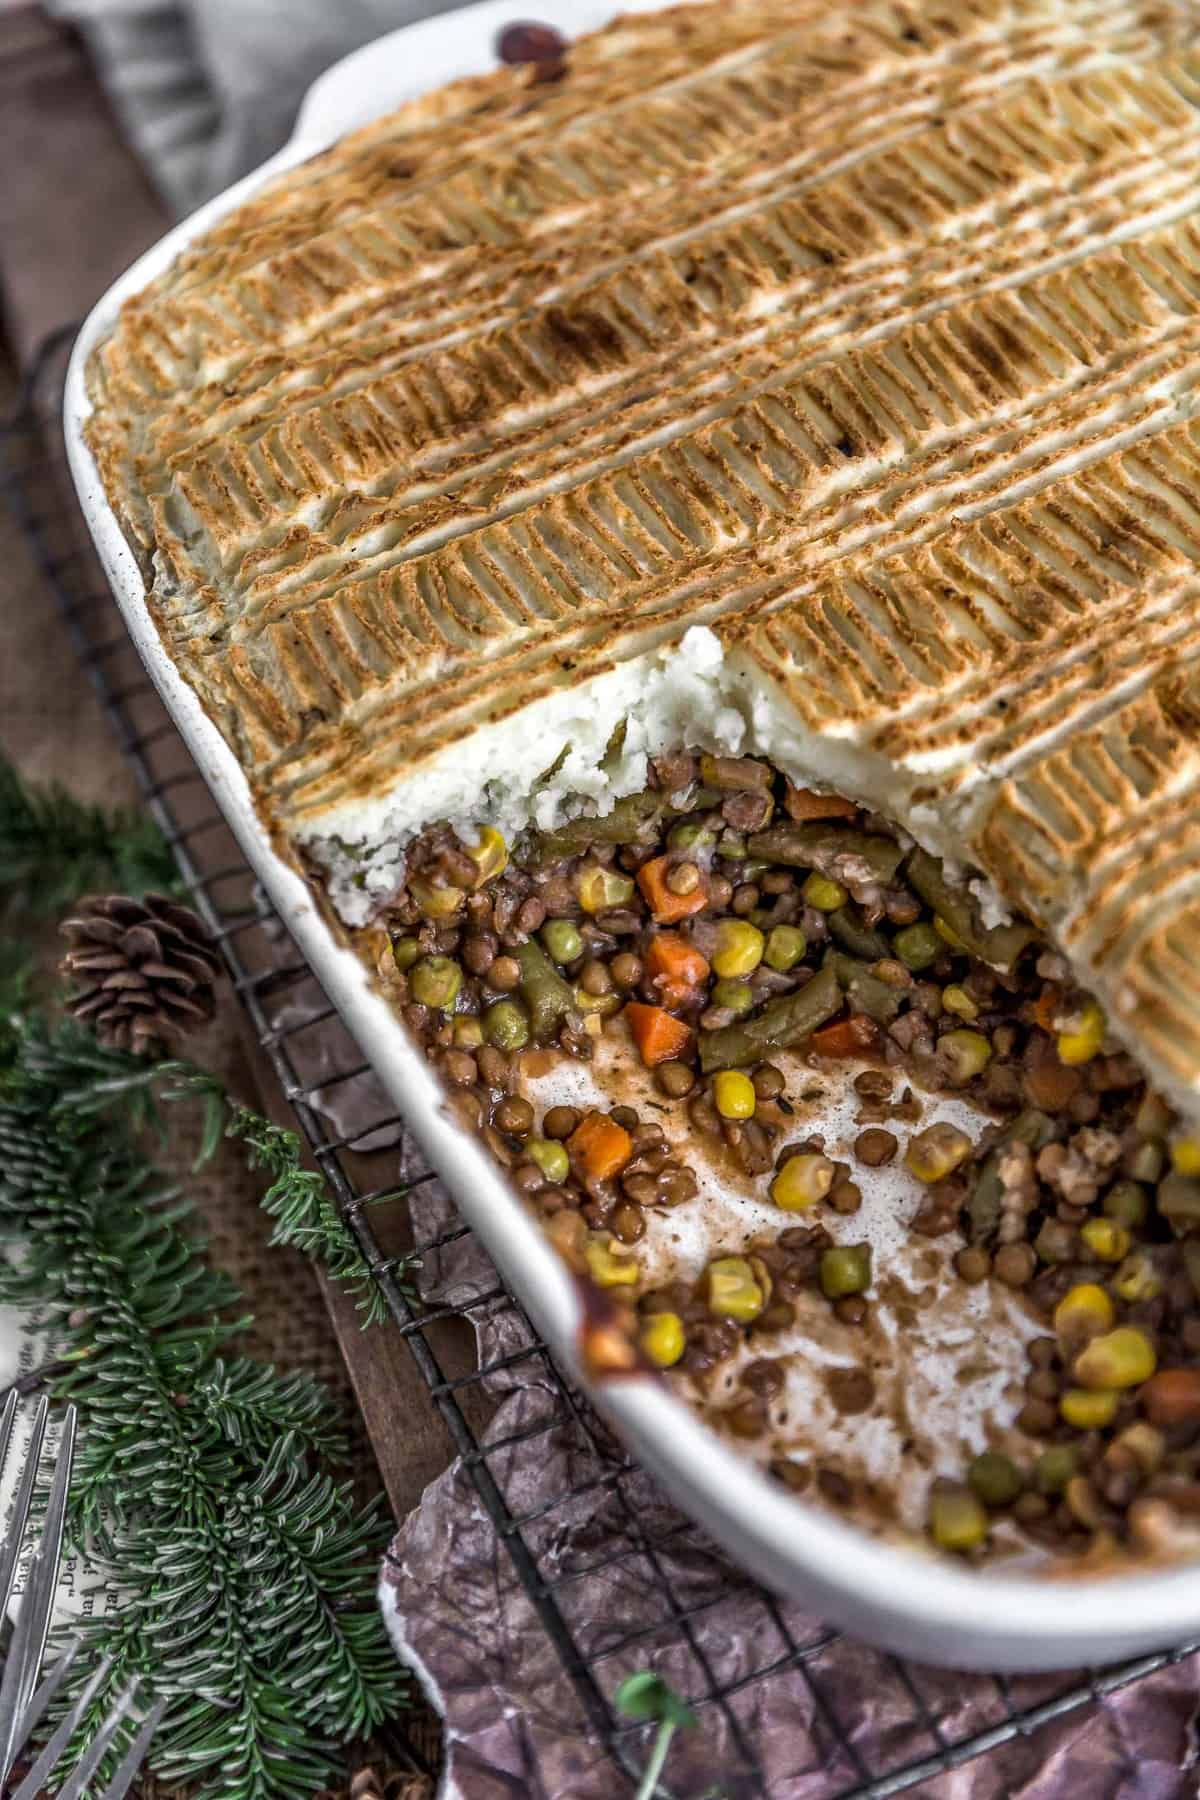 Dish of Vegan Lentil Shepherds Pie